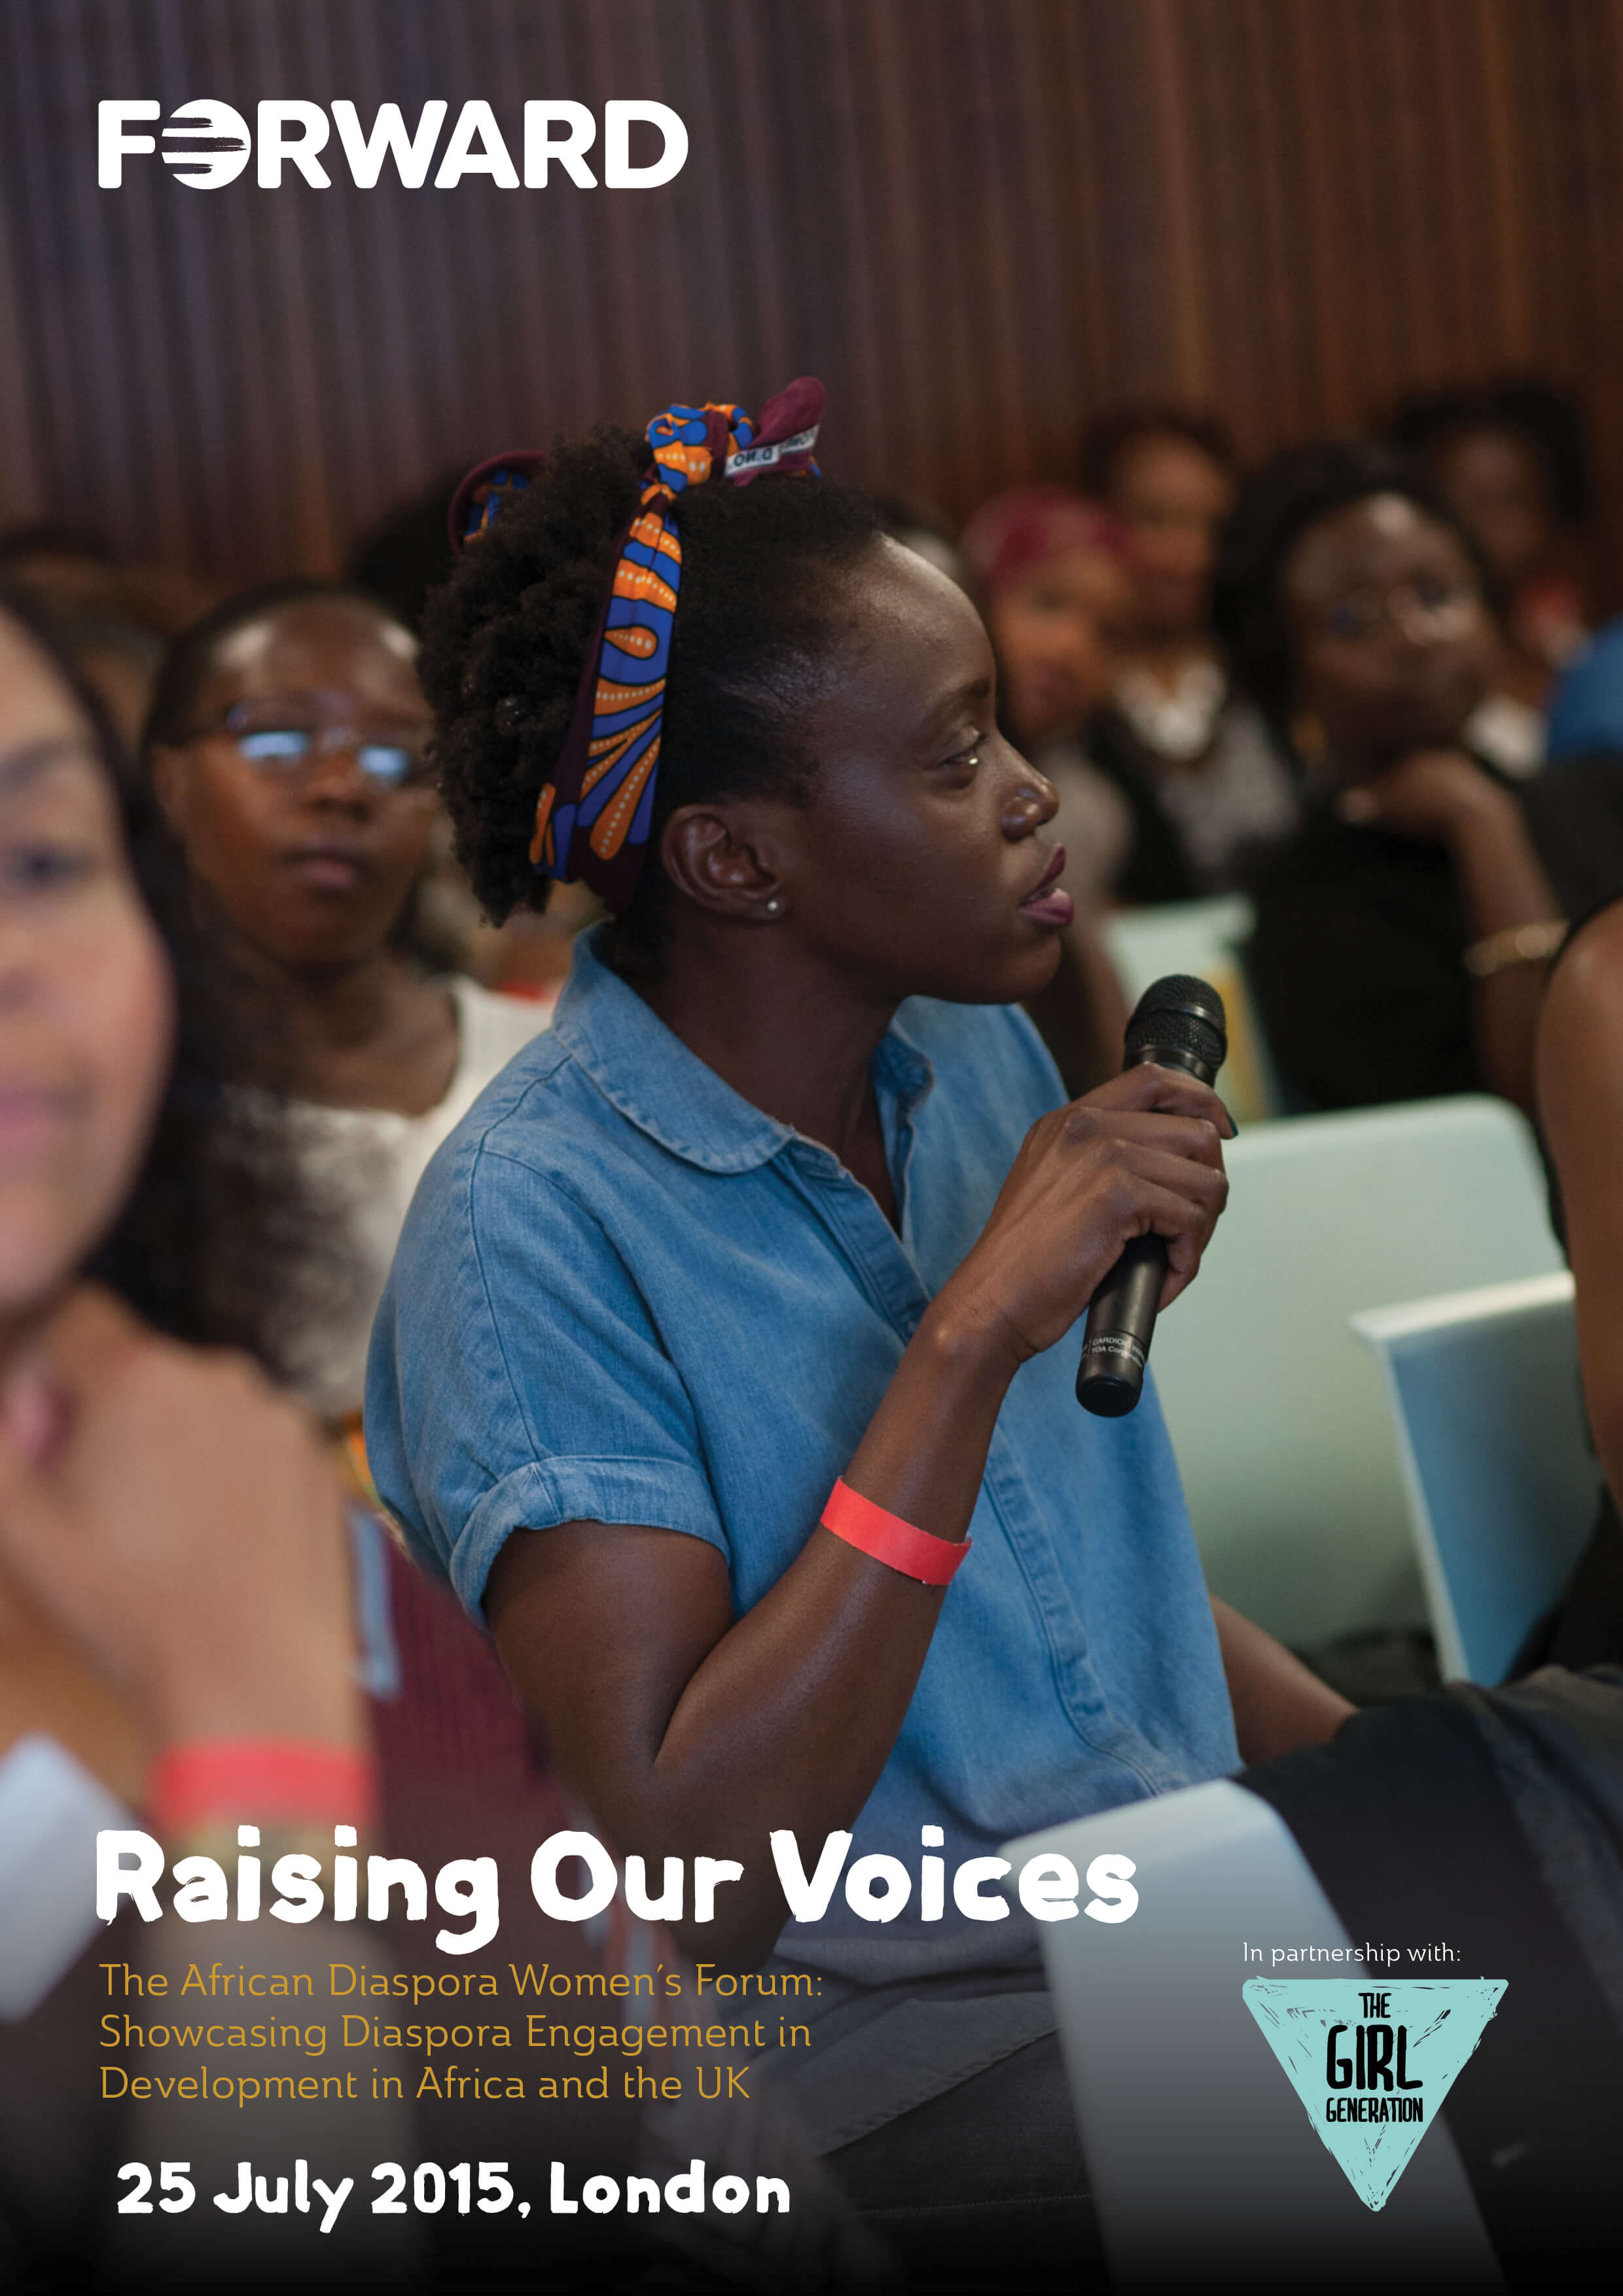 Raising Our Voices